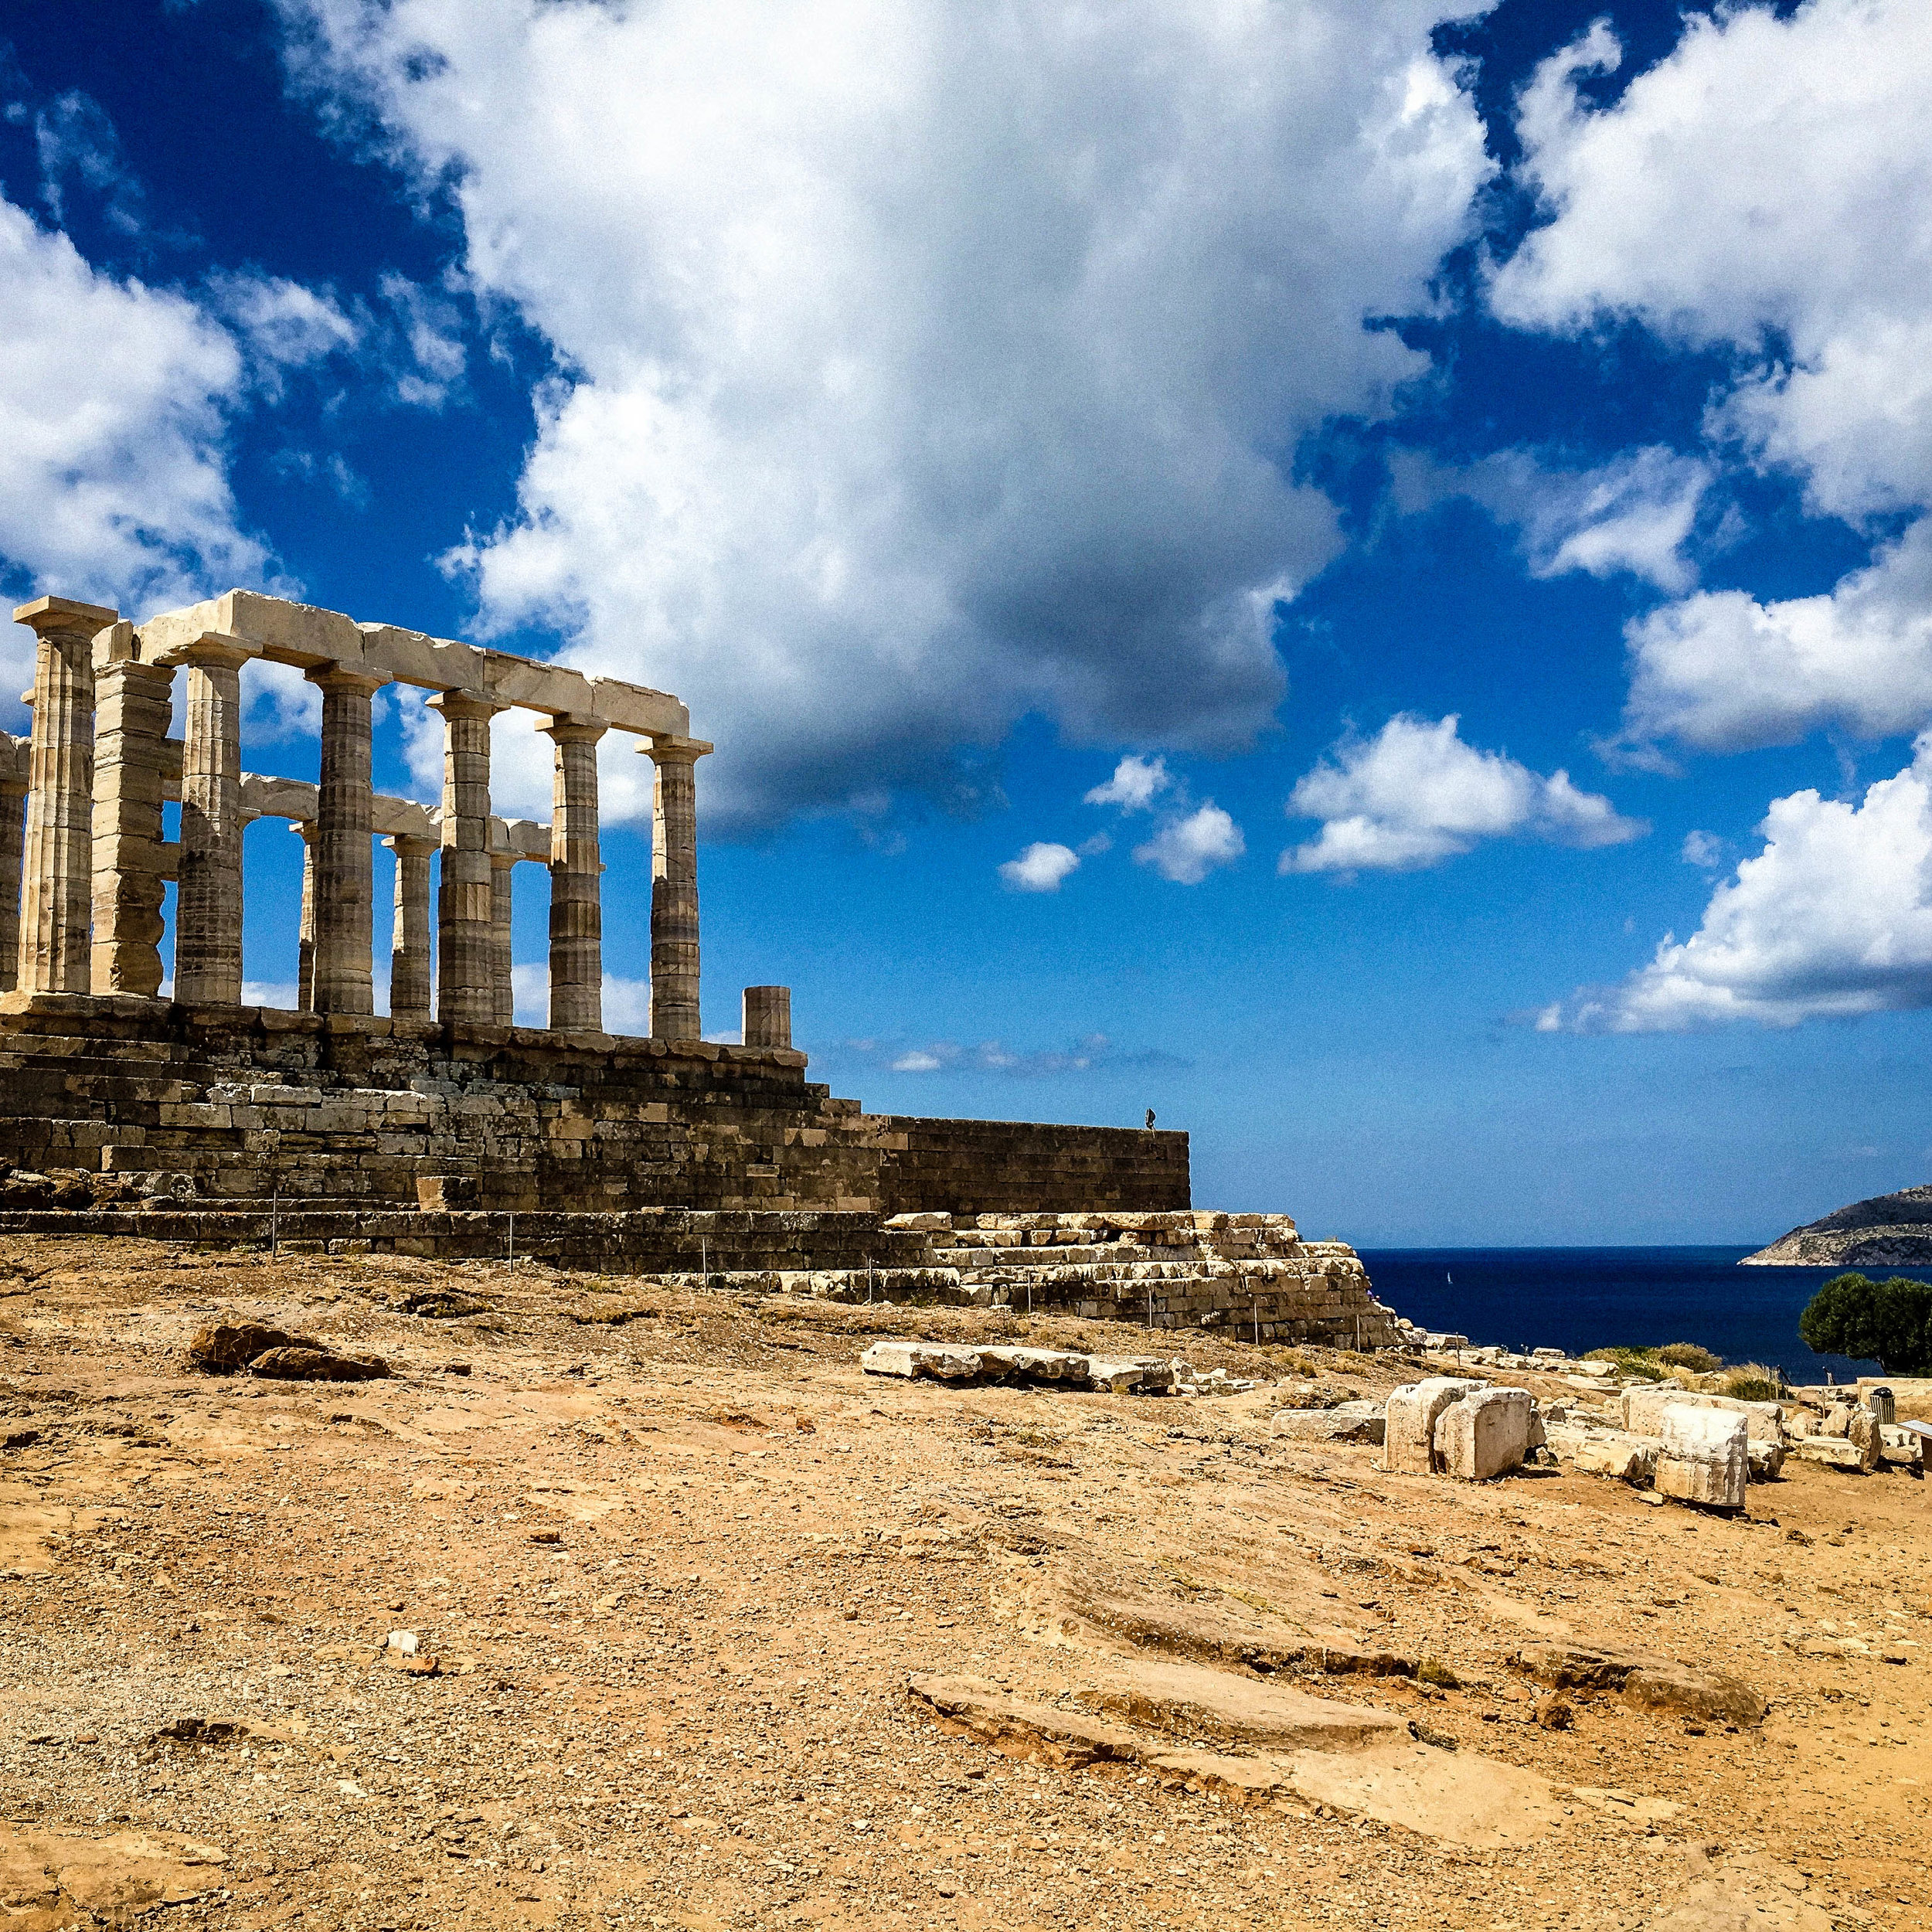 """Blue sky with clouds, and the remaining ruins of the temple of Sounion. This image is a good representation for the article """"how to avoid tourists in Greece"""""""